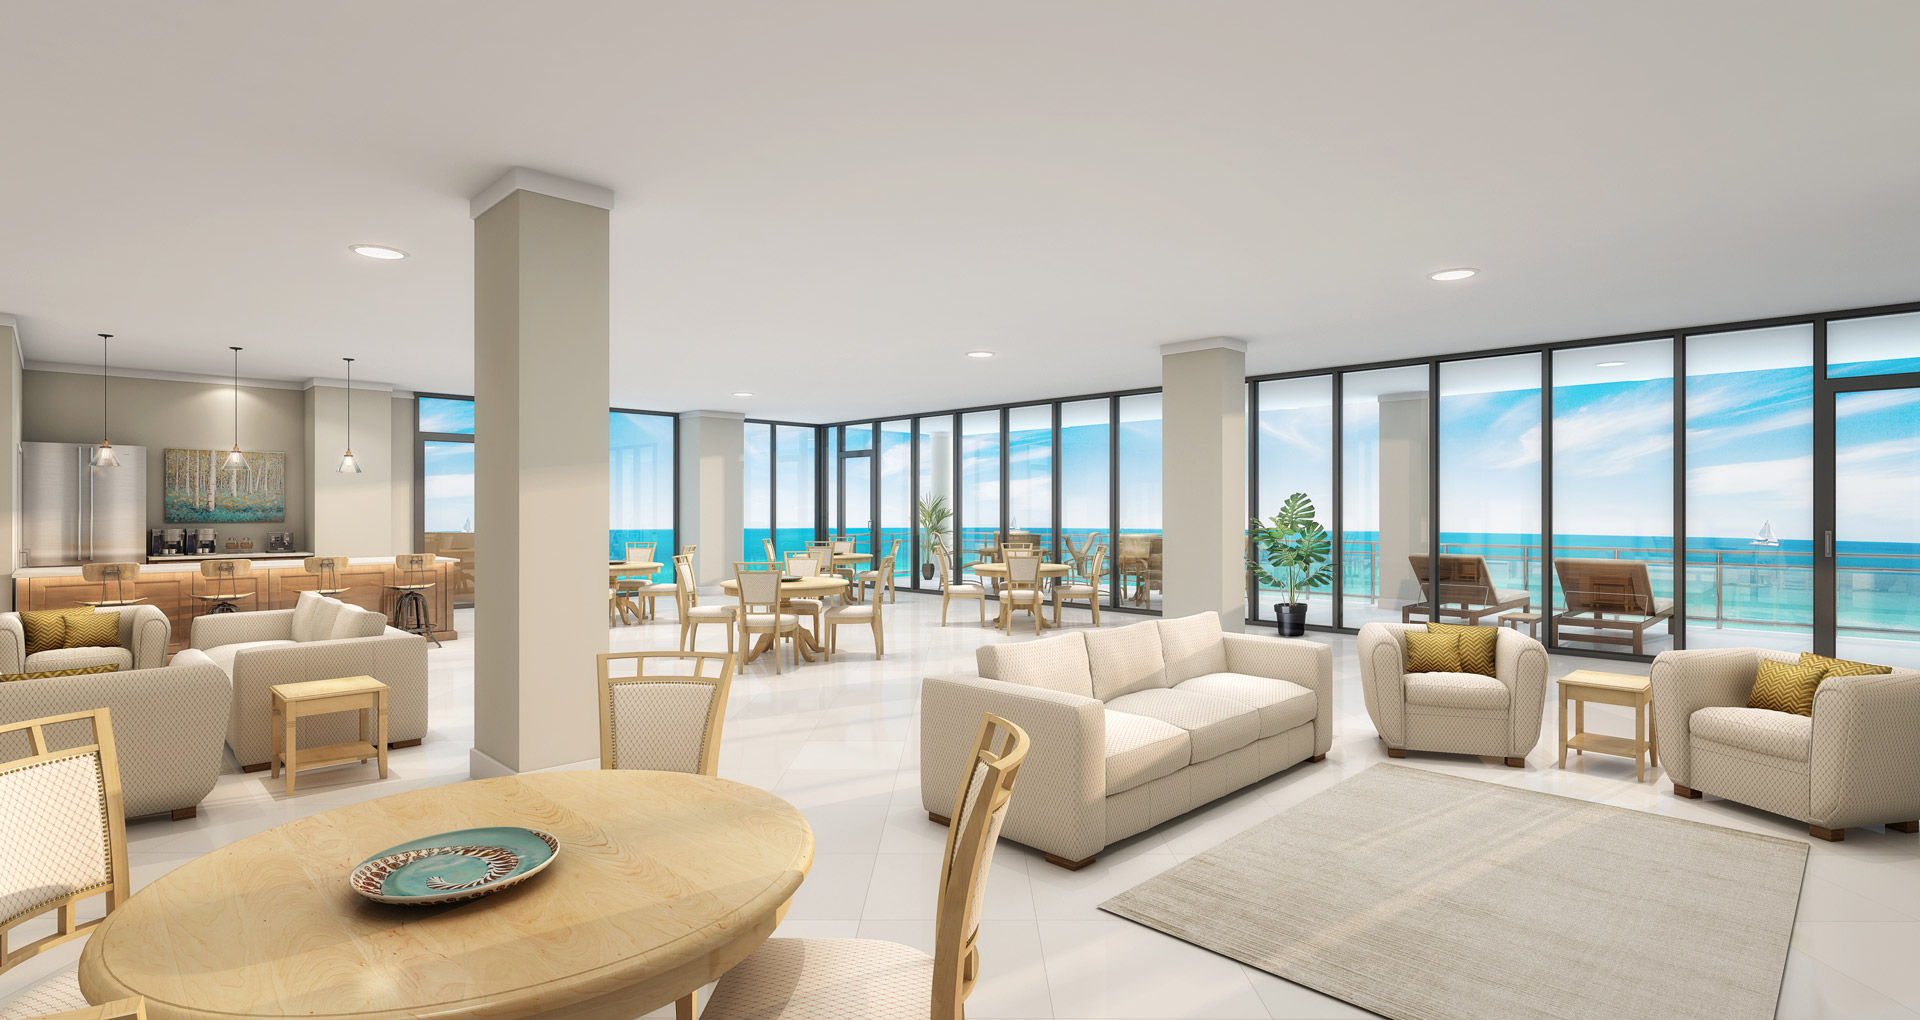 3d rendering of the interior of a penthouse in a beach condominium overlooking the ocean.